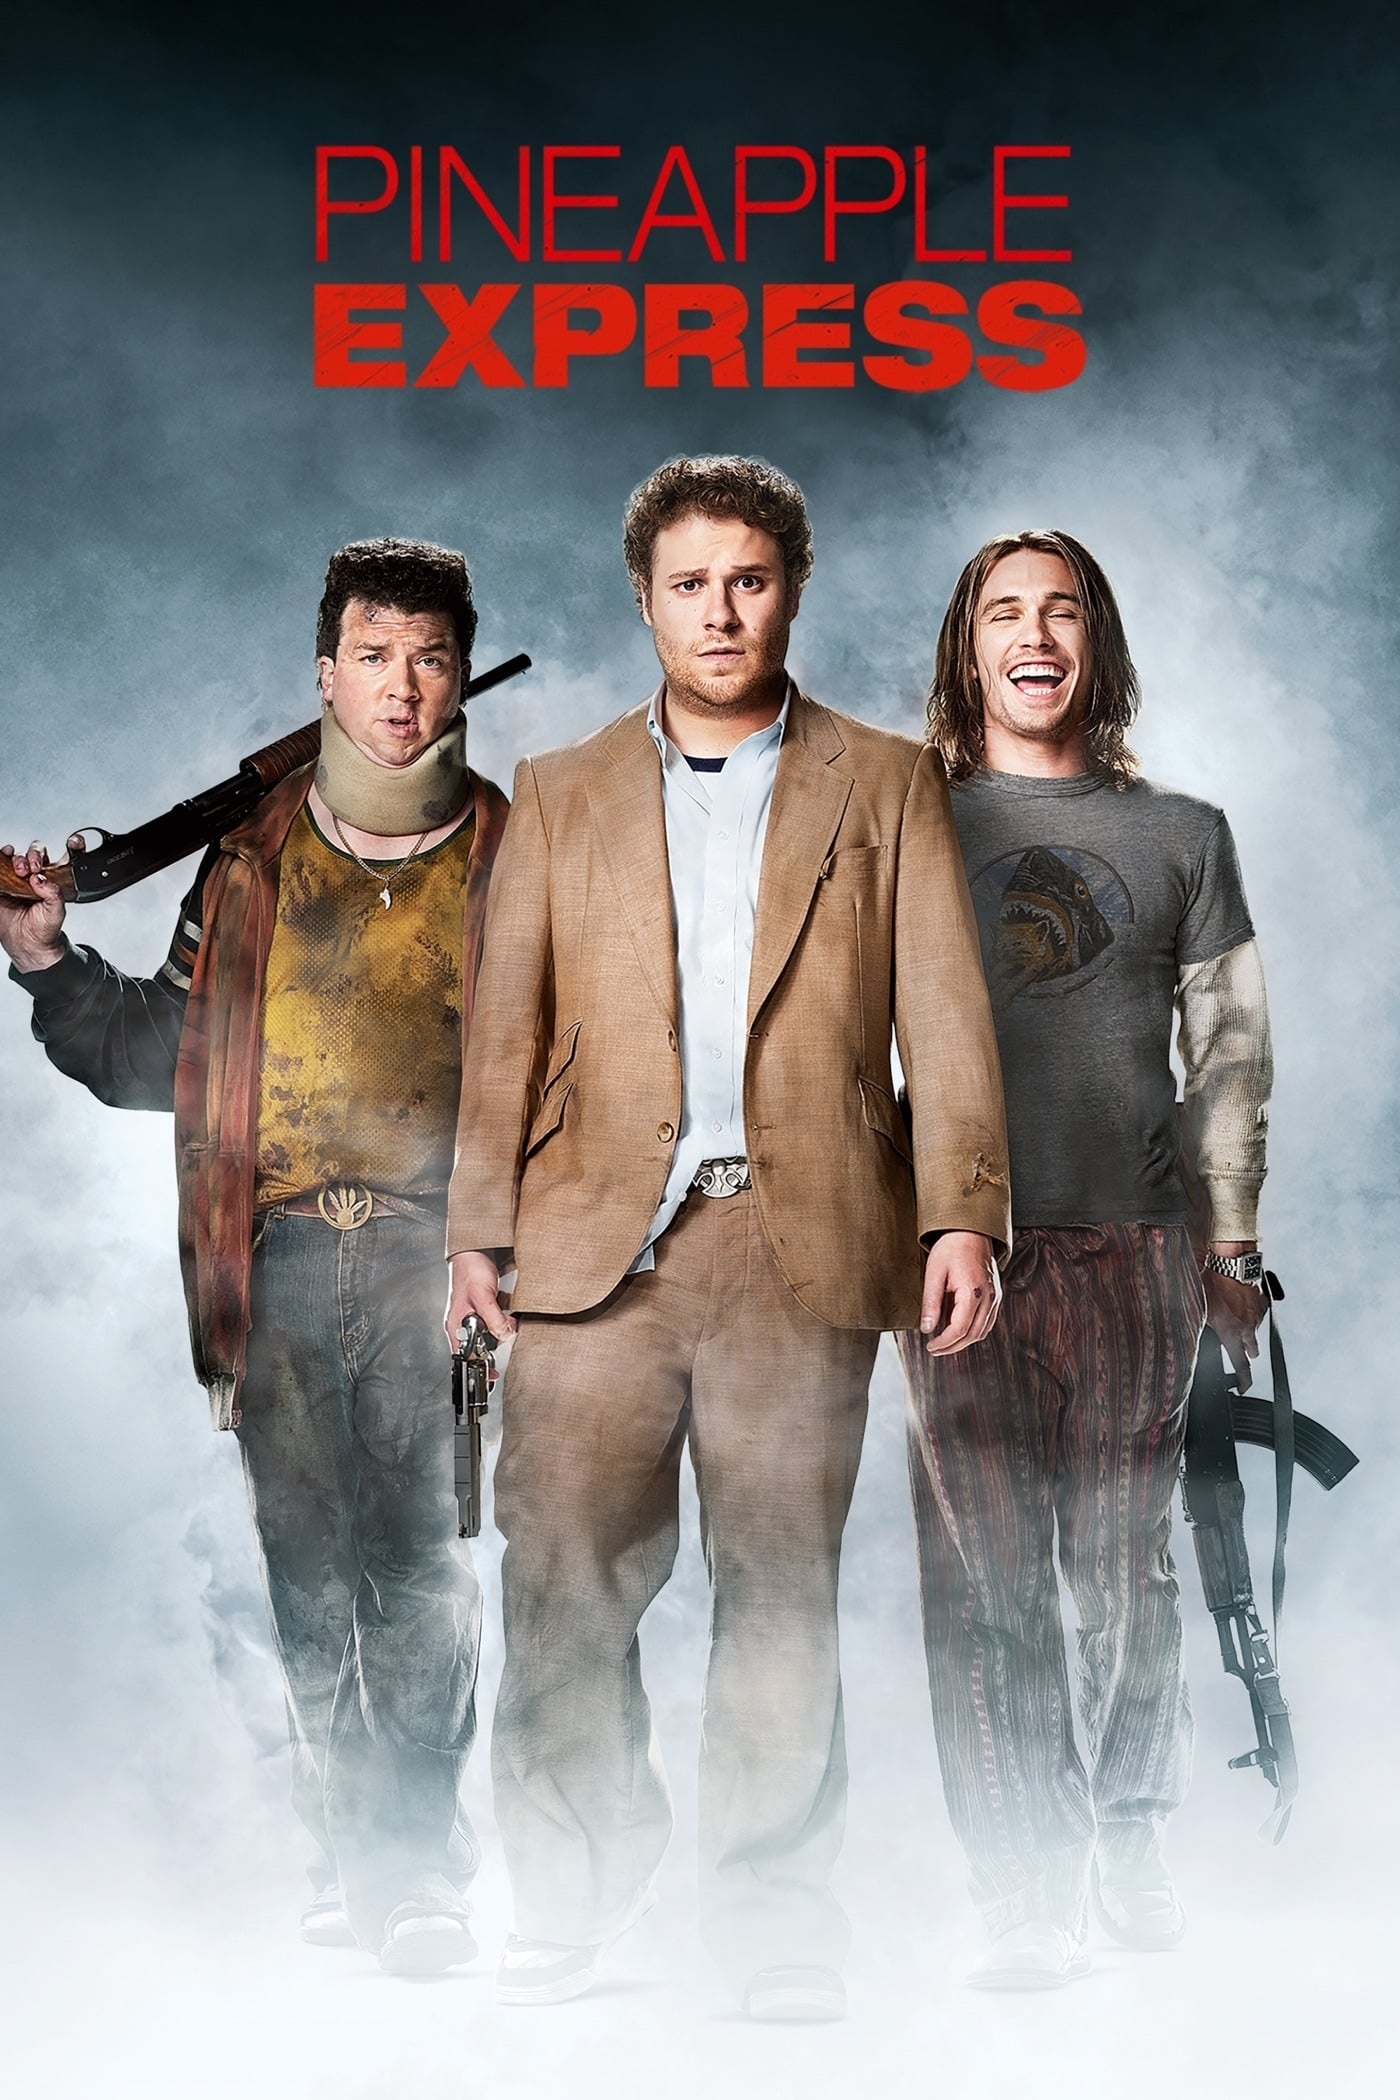 Pineapple Express Movie Streaming Online